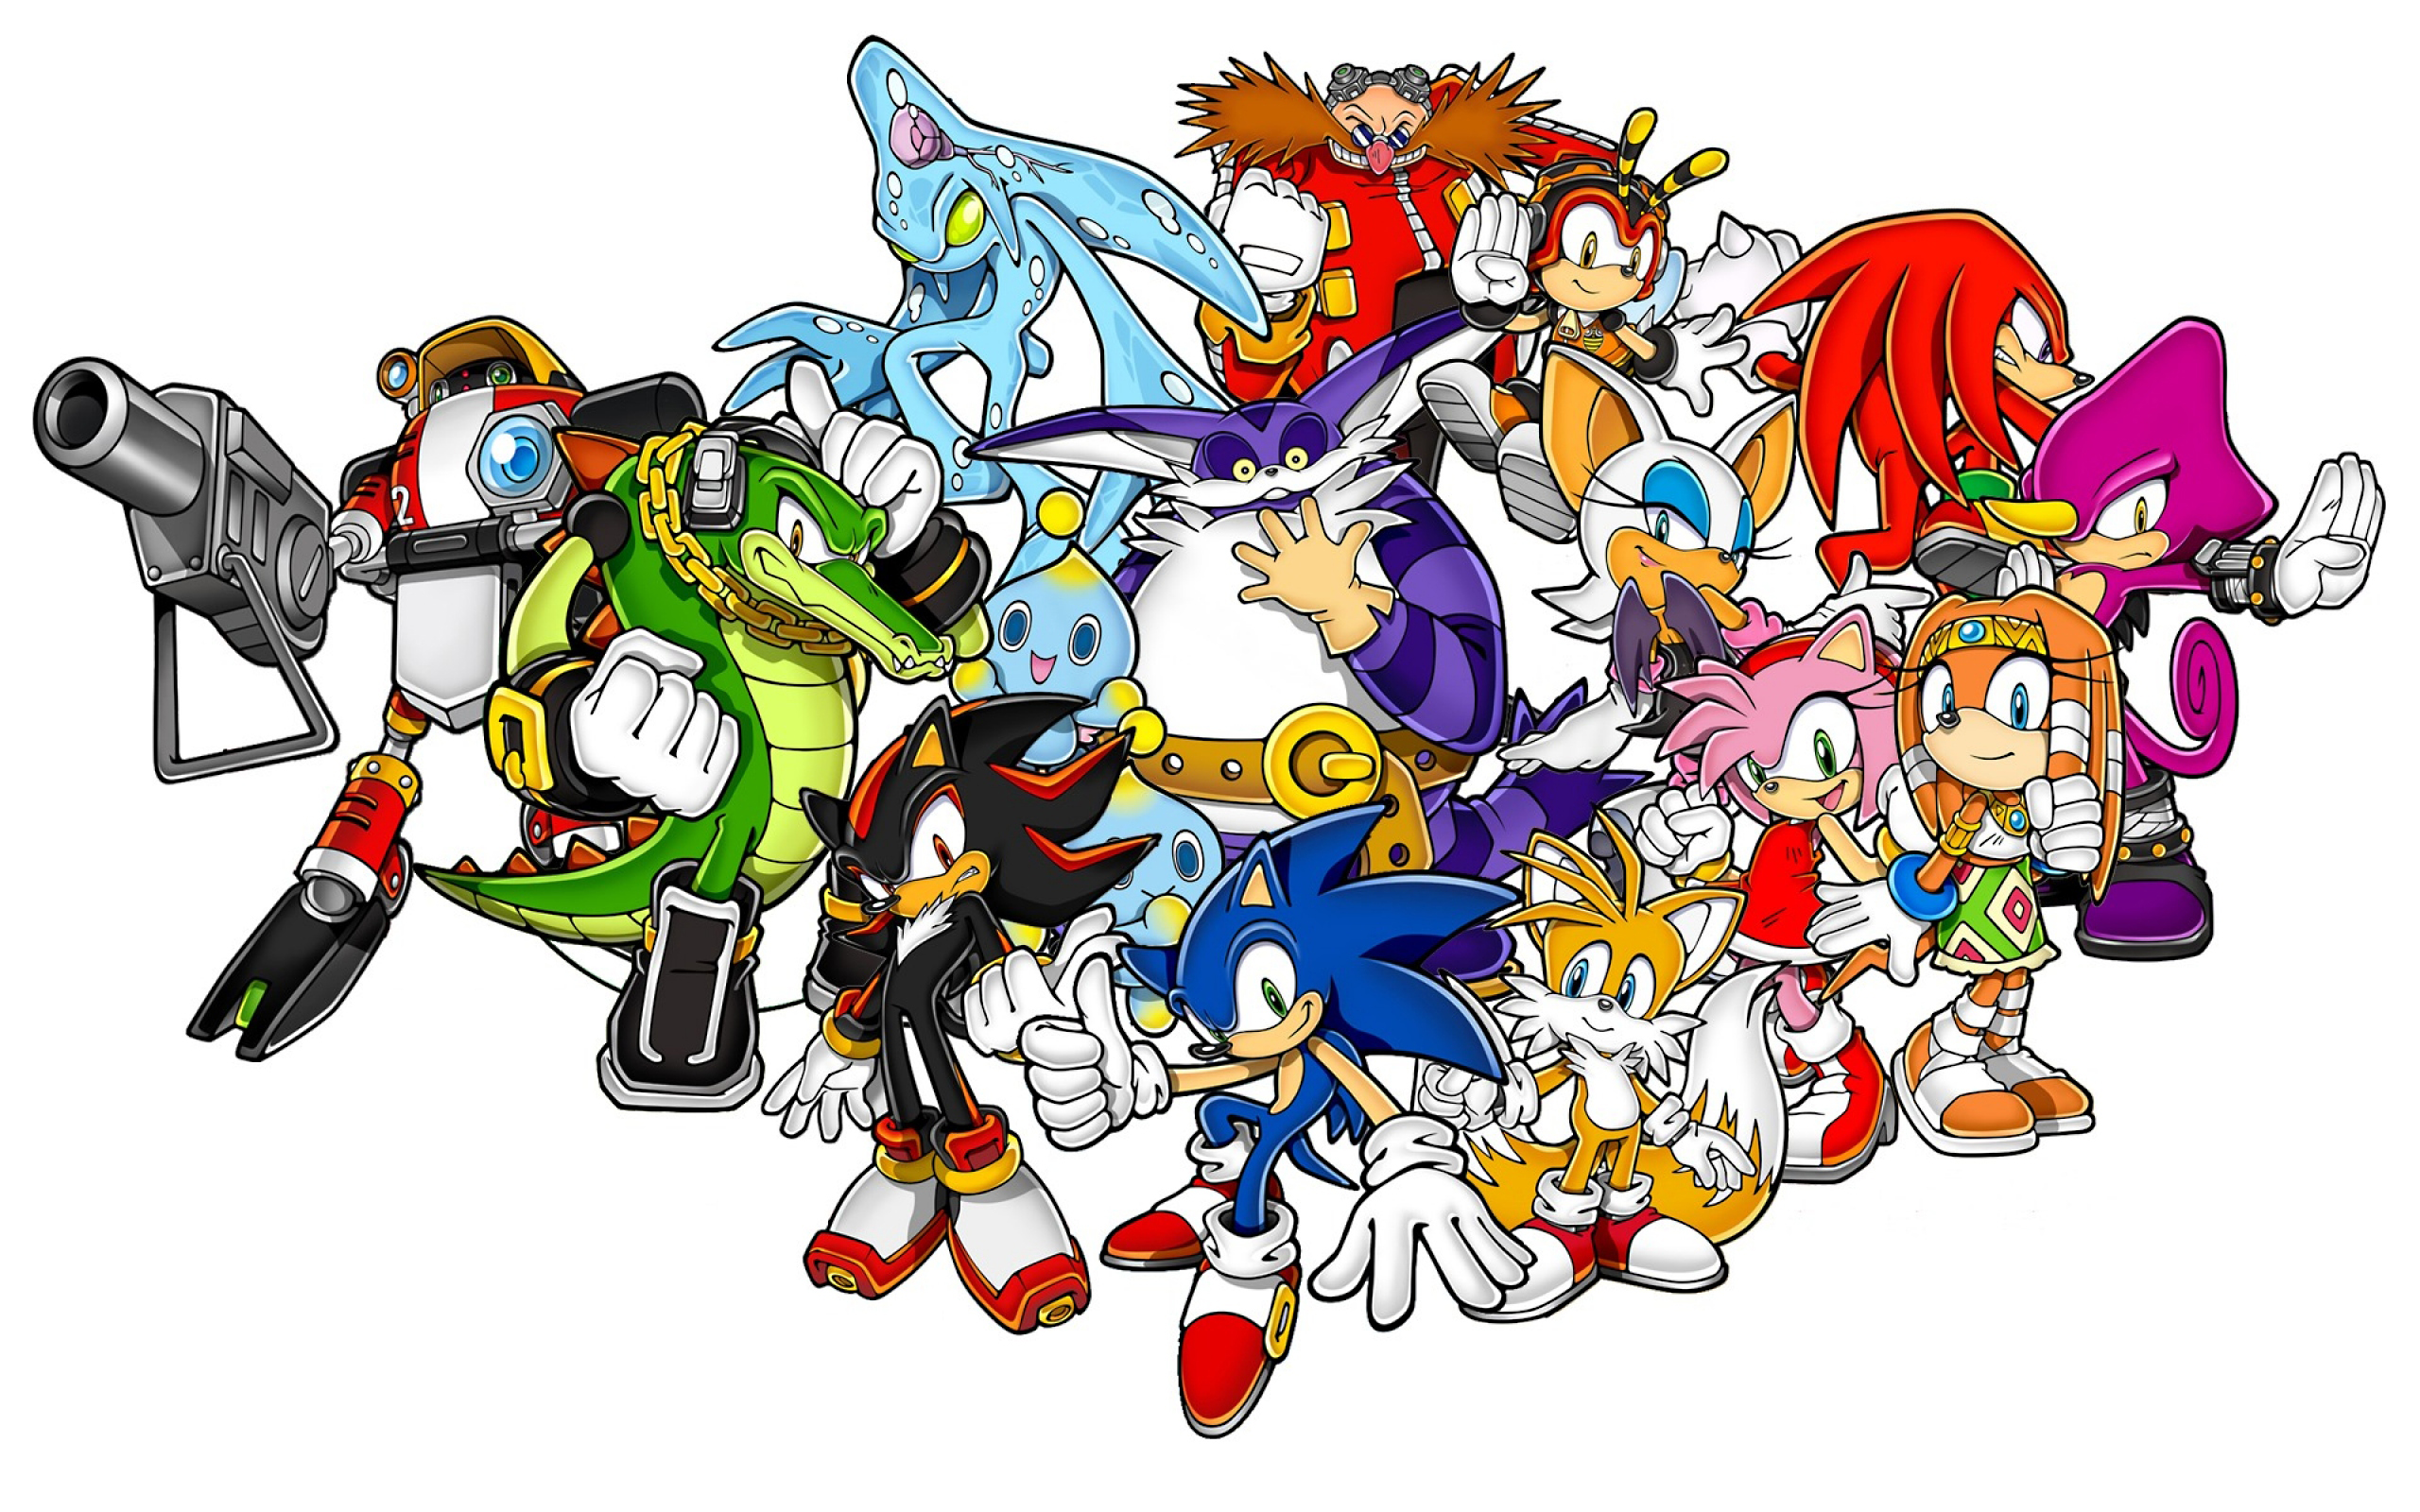 sonic the hedgehog character wallpaper zerochan anime image board